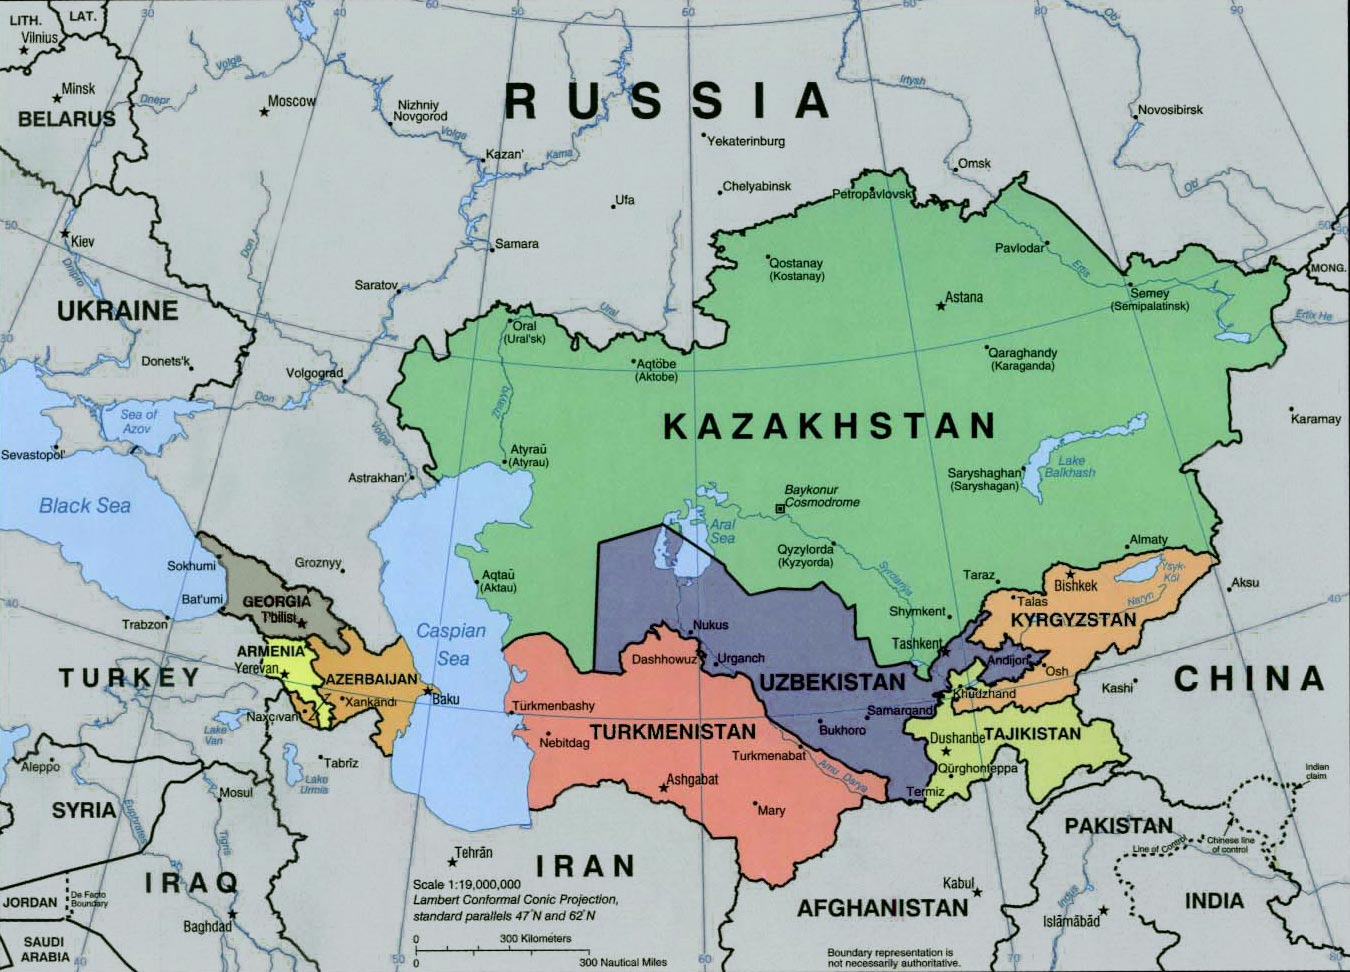 Central asia map caspian sea caucasus and central asia continents maps gumiabroncs